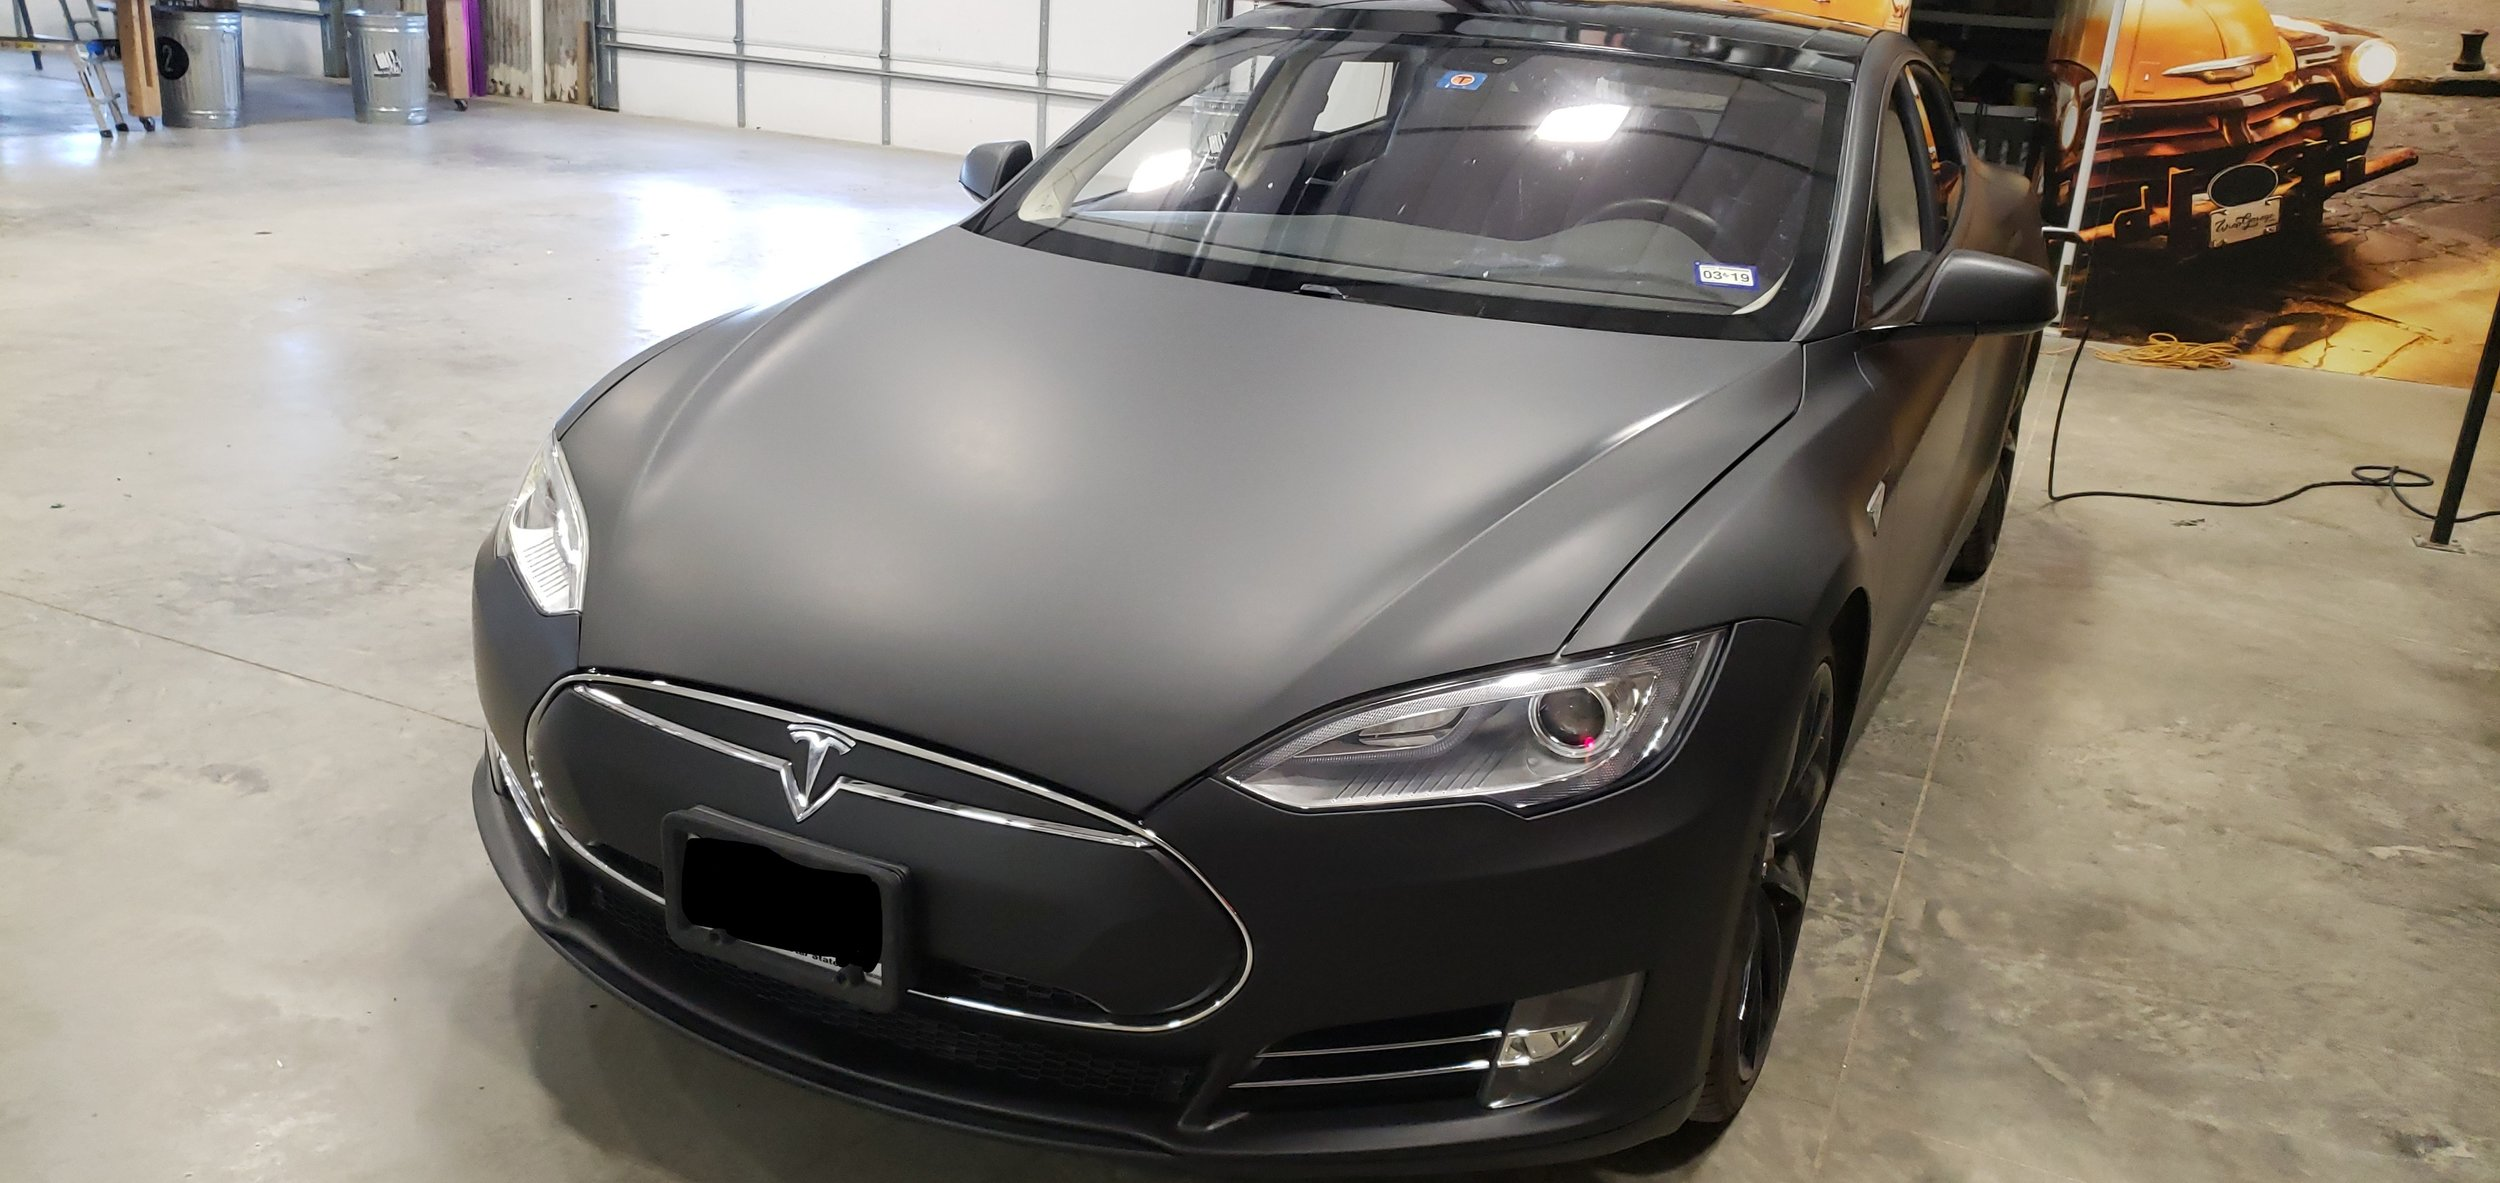 tesla after front view.jpg